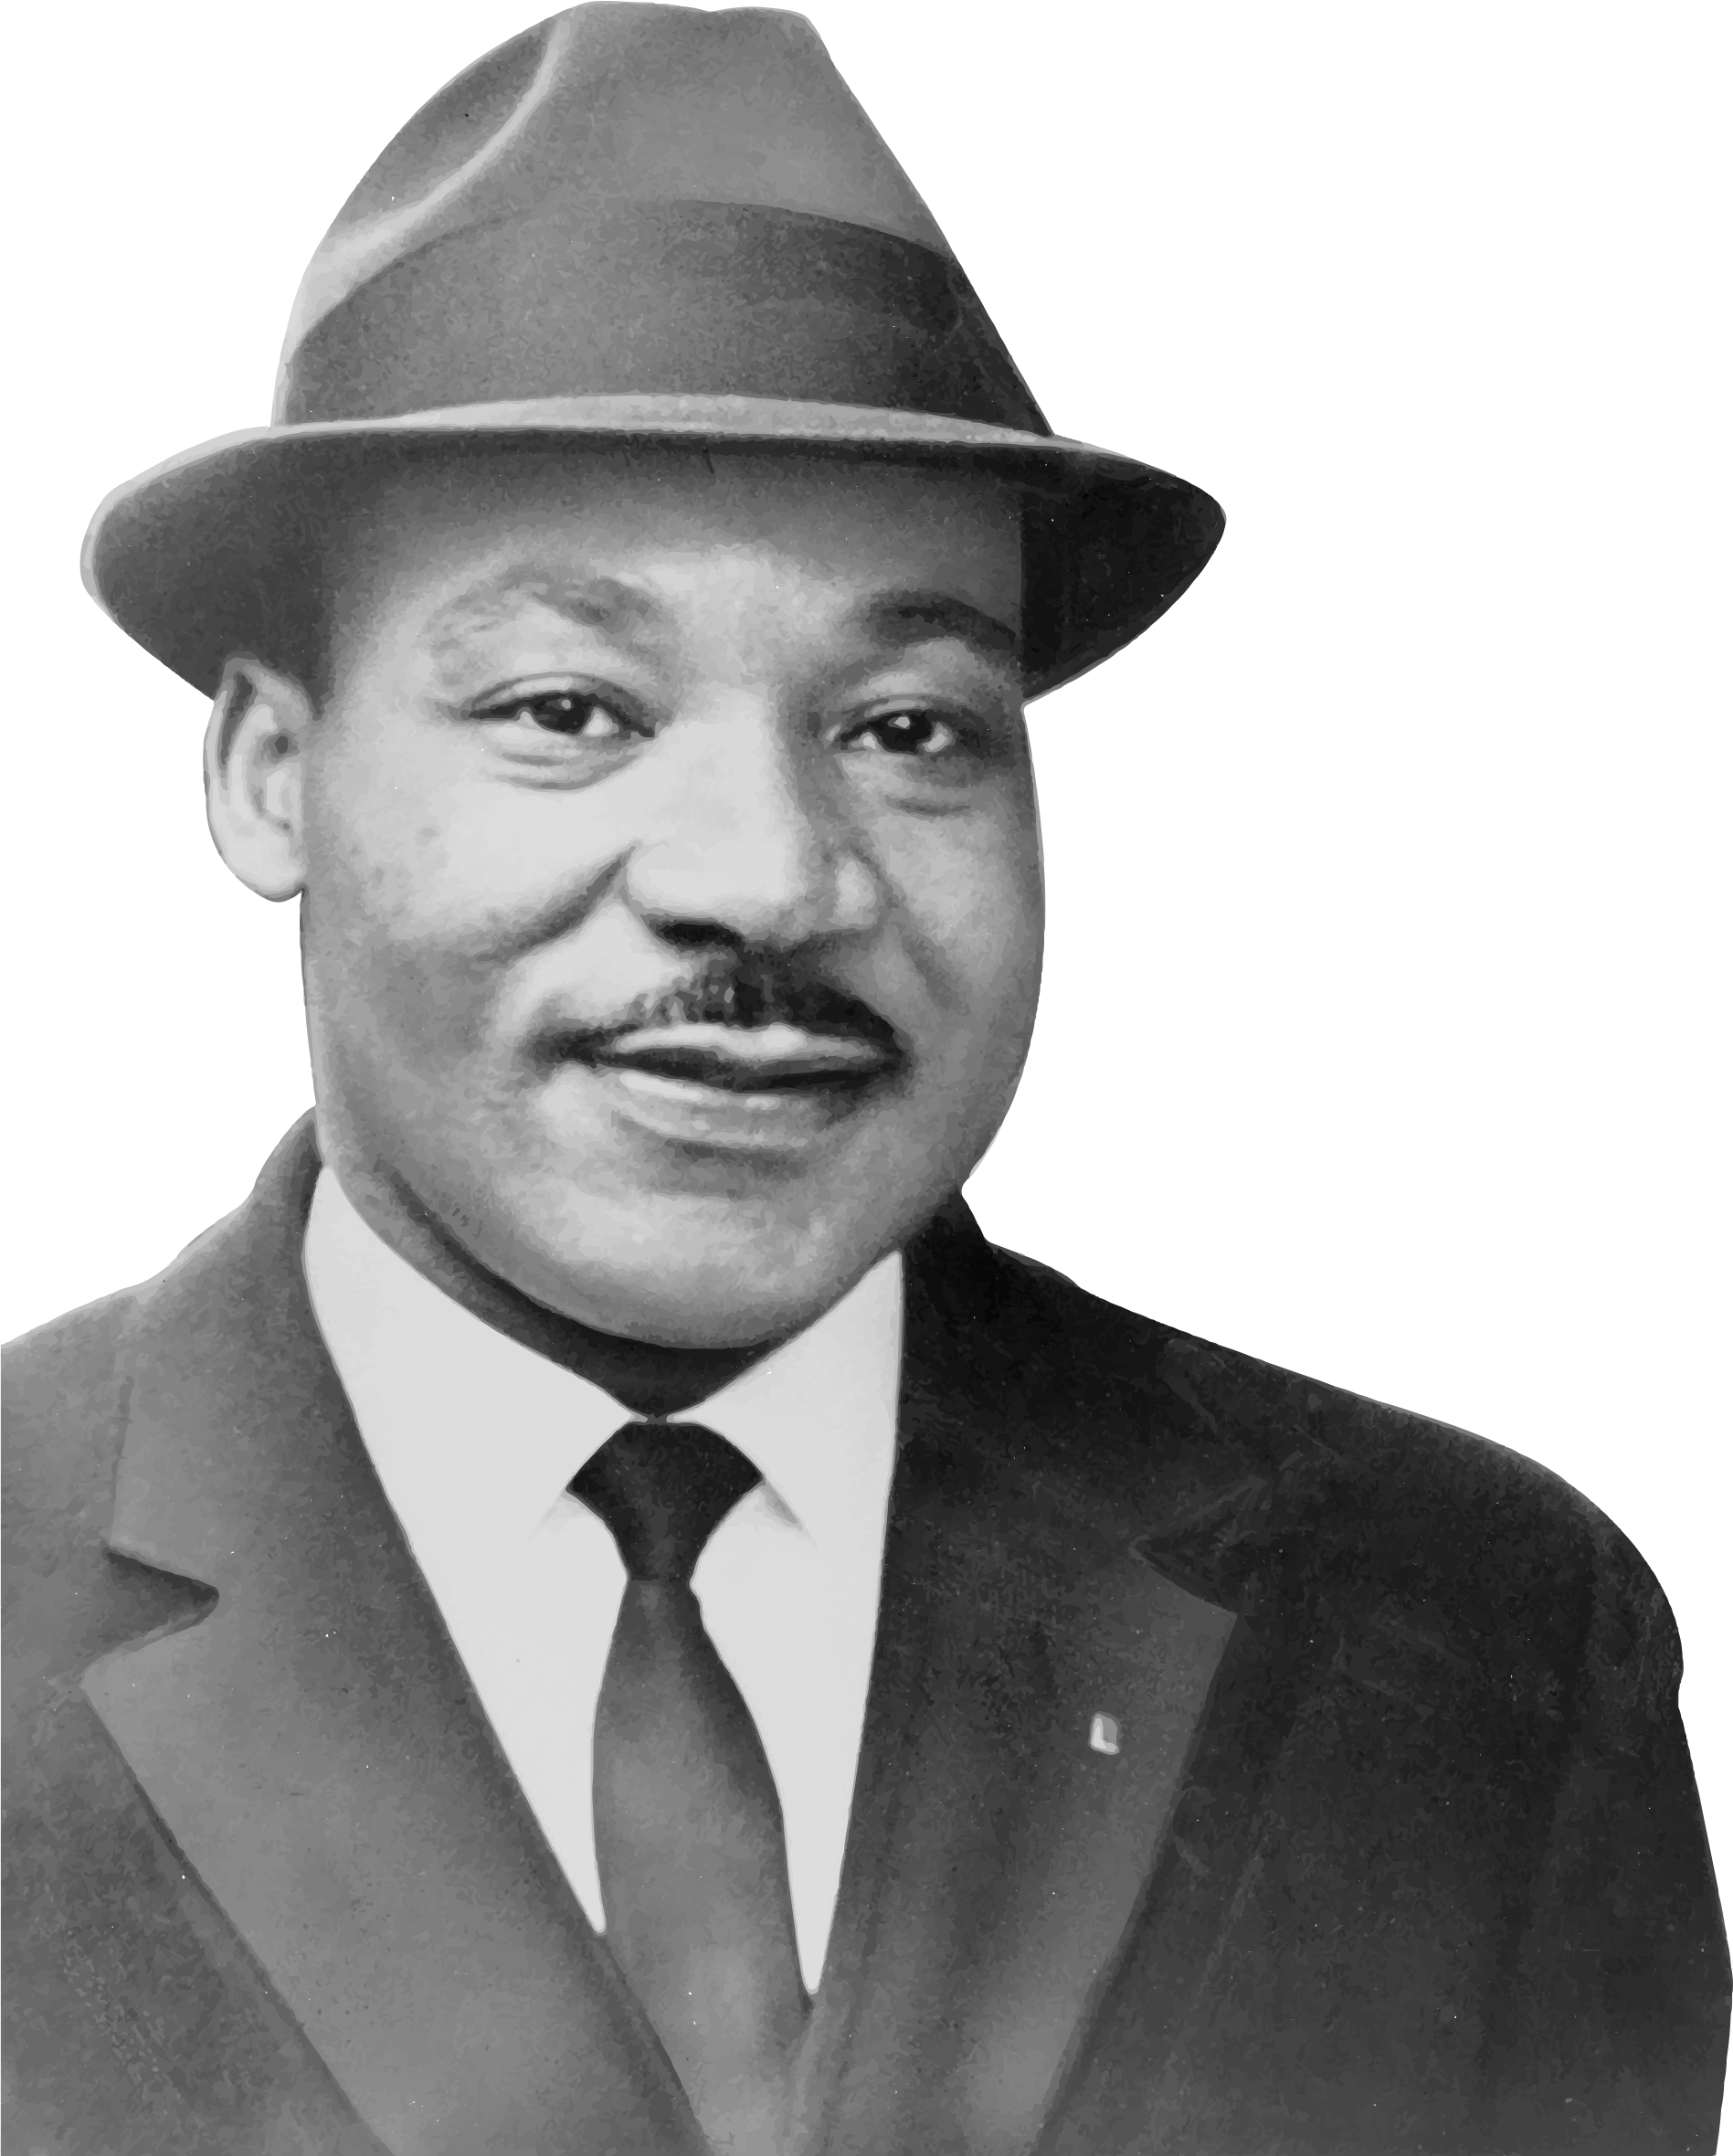 Martin Luther King Jr 3 by GDJ